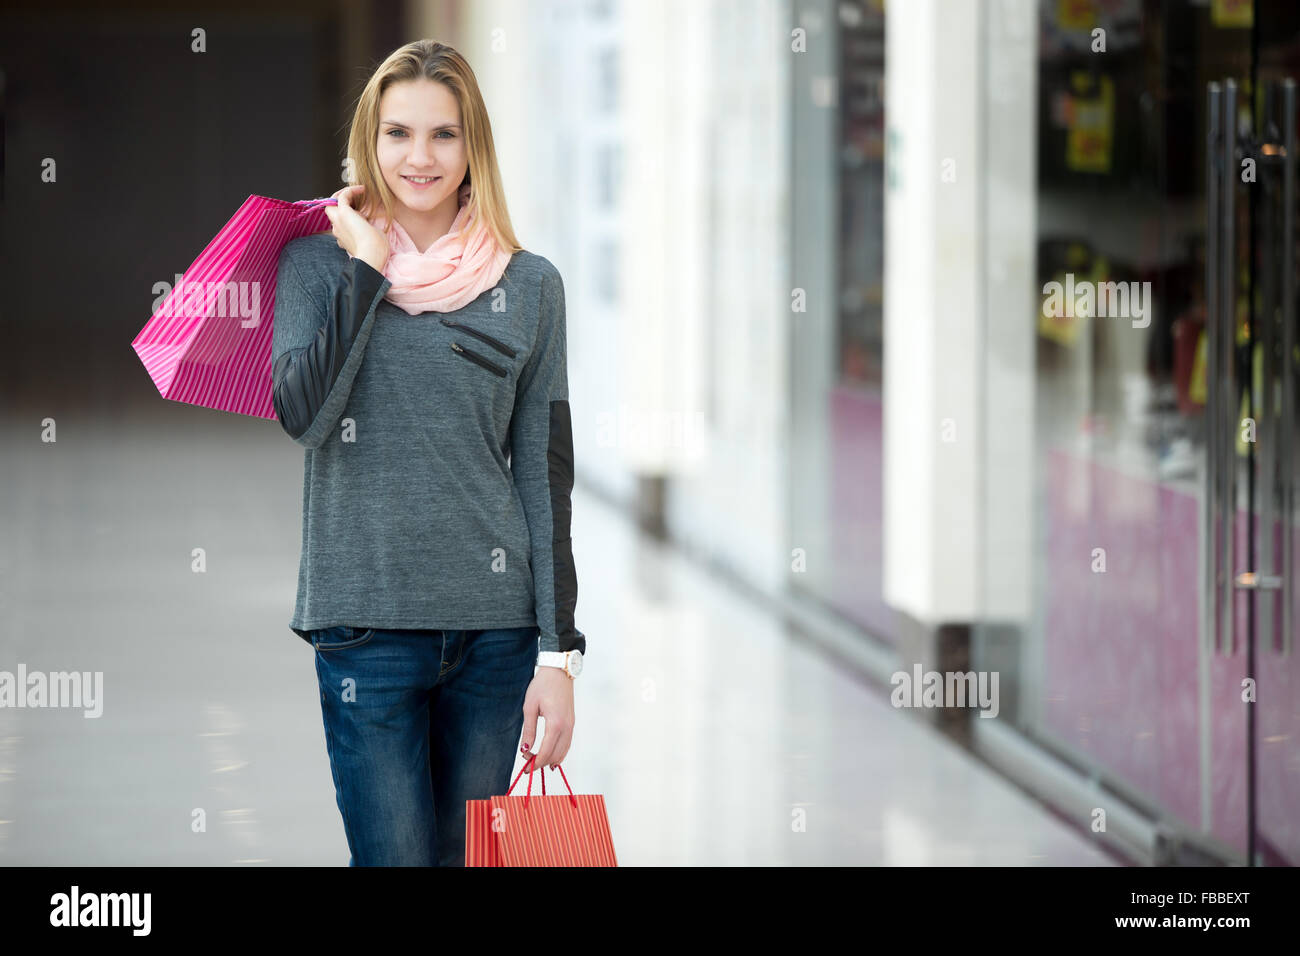 Smiling beautiful teenage girl walking in shopping center with colorful paper bags, passing shopwindow with discount - Stock Image